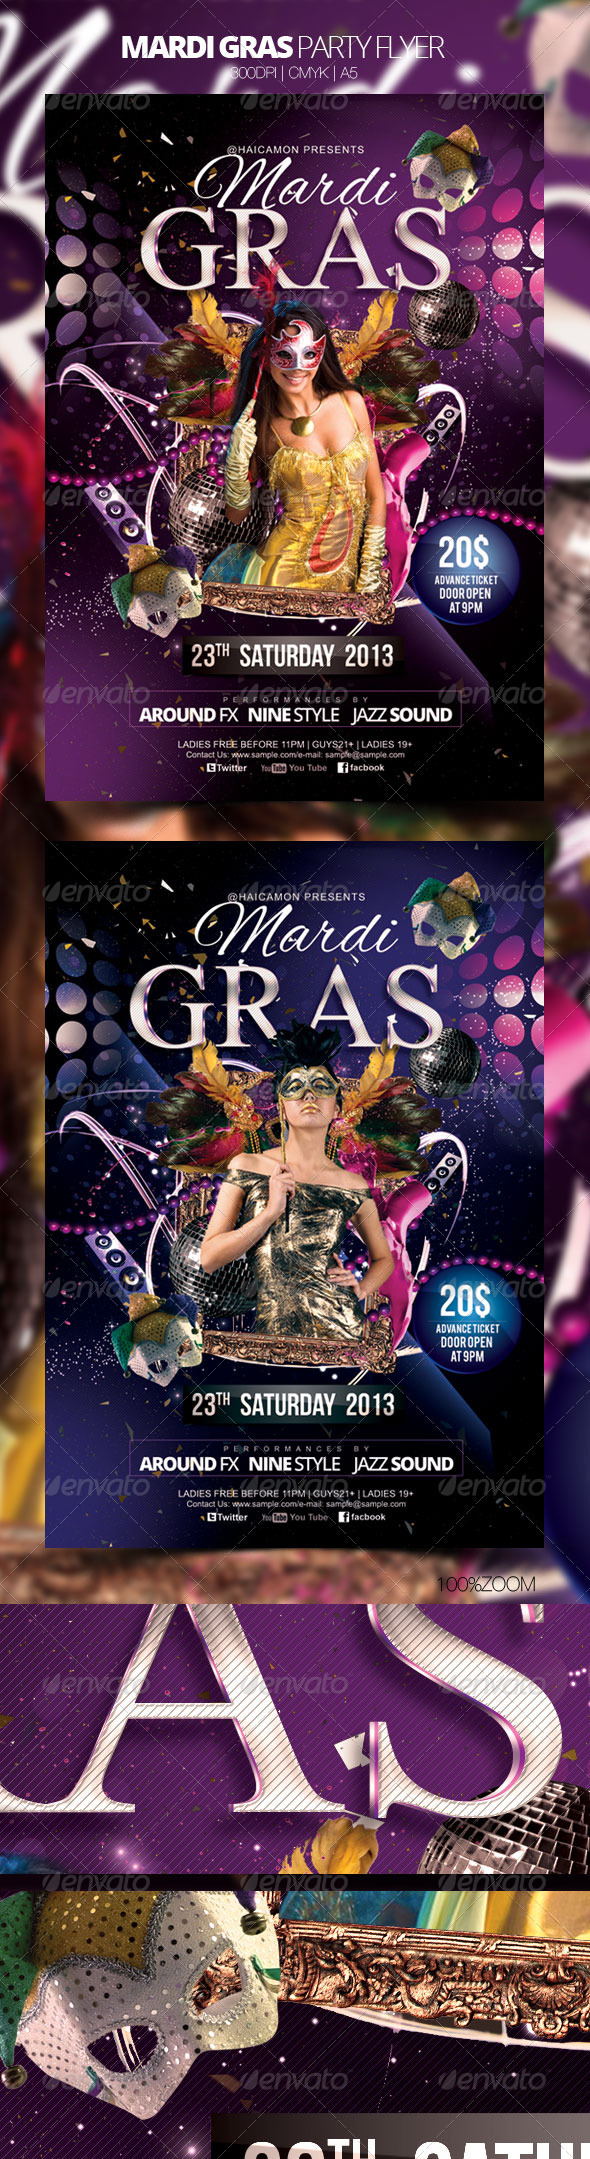 GraphicRiver Mardi Gras Party Flyer 3922165